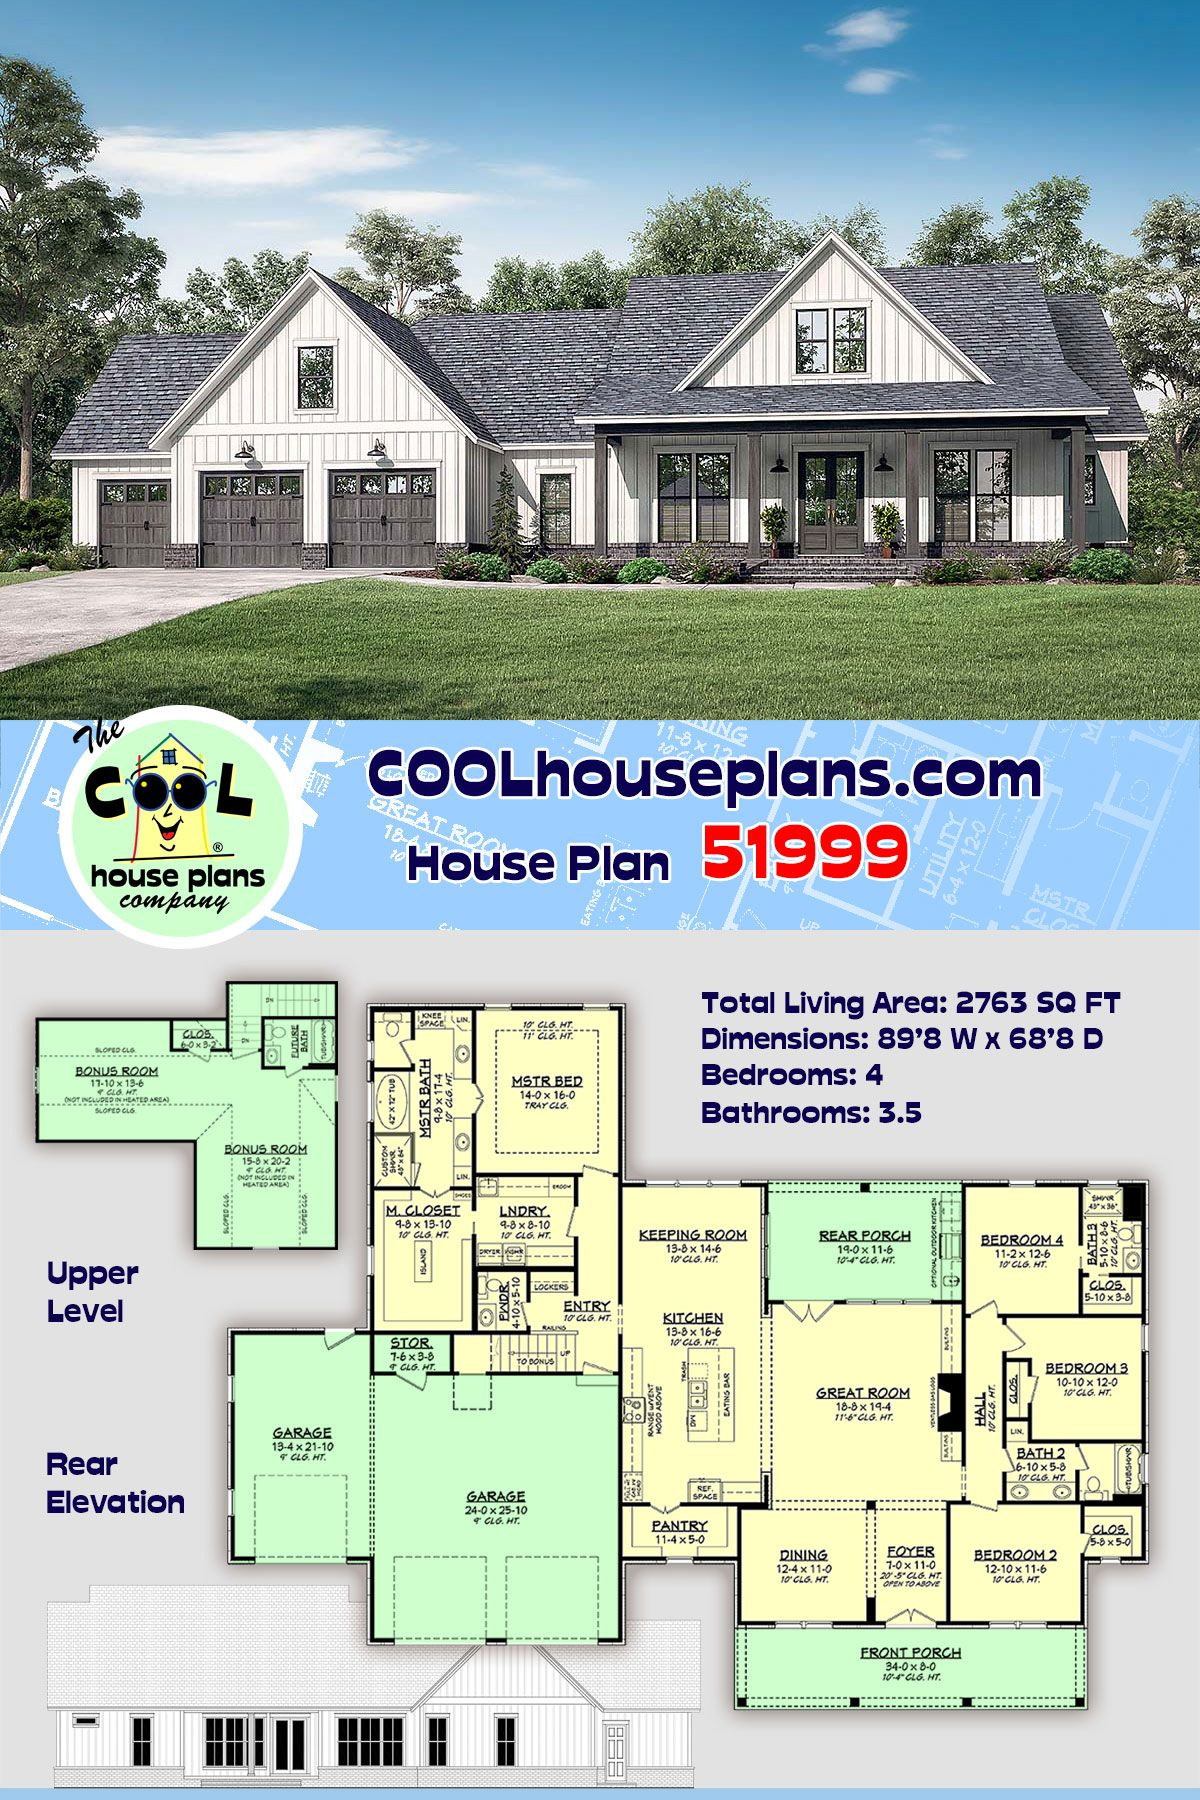 Southern Style House Plan 51999 With 4 Bed 4 Bath 3 Car Garage In 2020 Farmhouse Plans Modern Farmhouse Plans Farmhouse Style House Plans